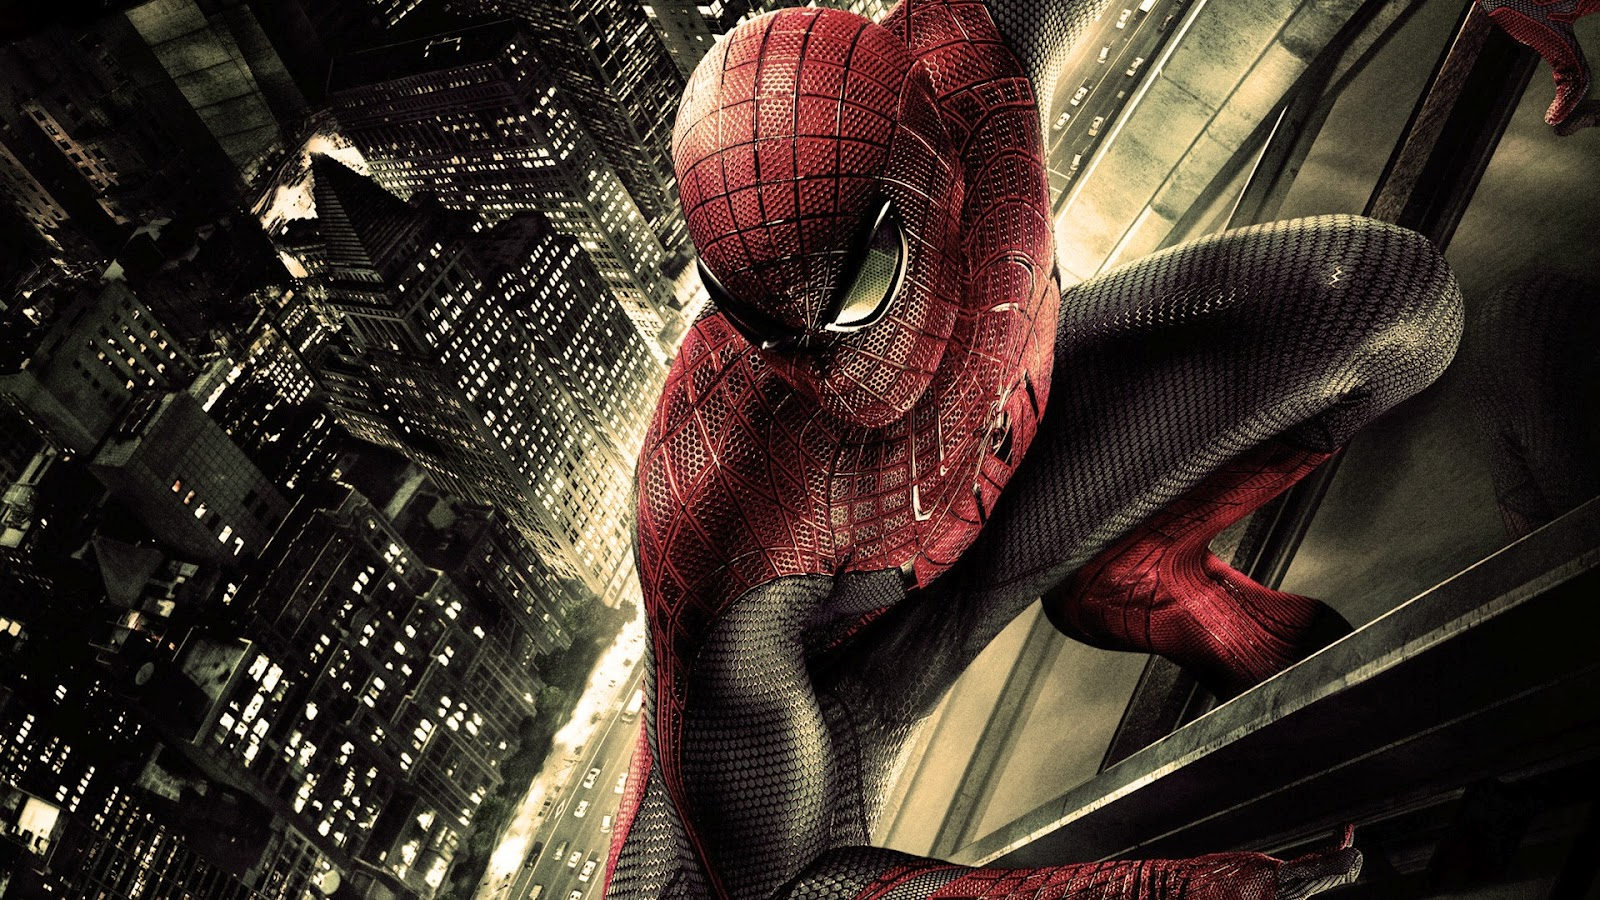 http://1.bp.blogspot.com/-eO5v_clblUc/UAbiGa19hLI/AAAAAAAAC7g/0zOtgi0VW0M/s1600/The_Amazing_Spider-Man_Skysrapers_Awesome_HD_Wallpaper-Vvallpaper.Net.jpg